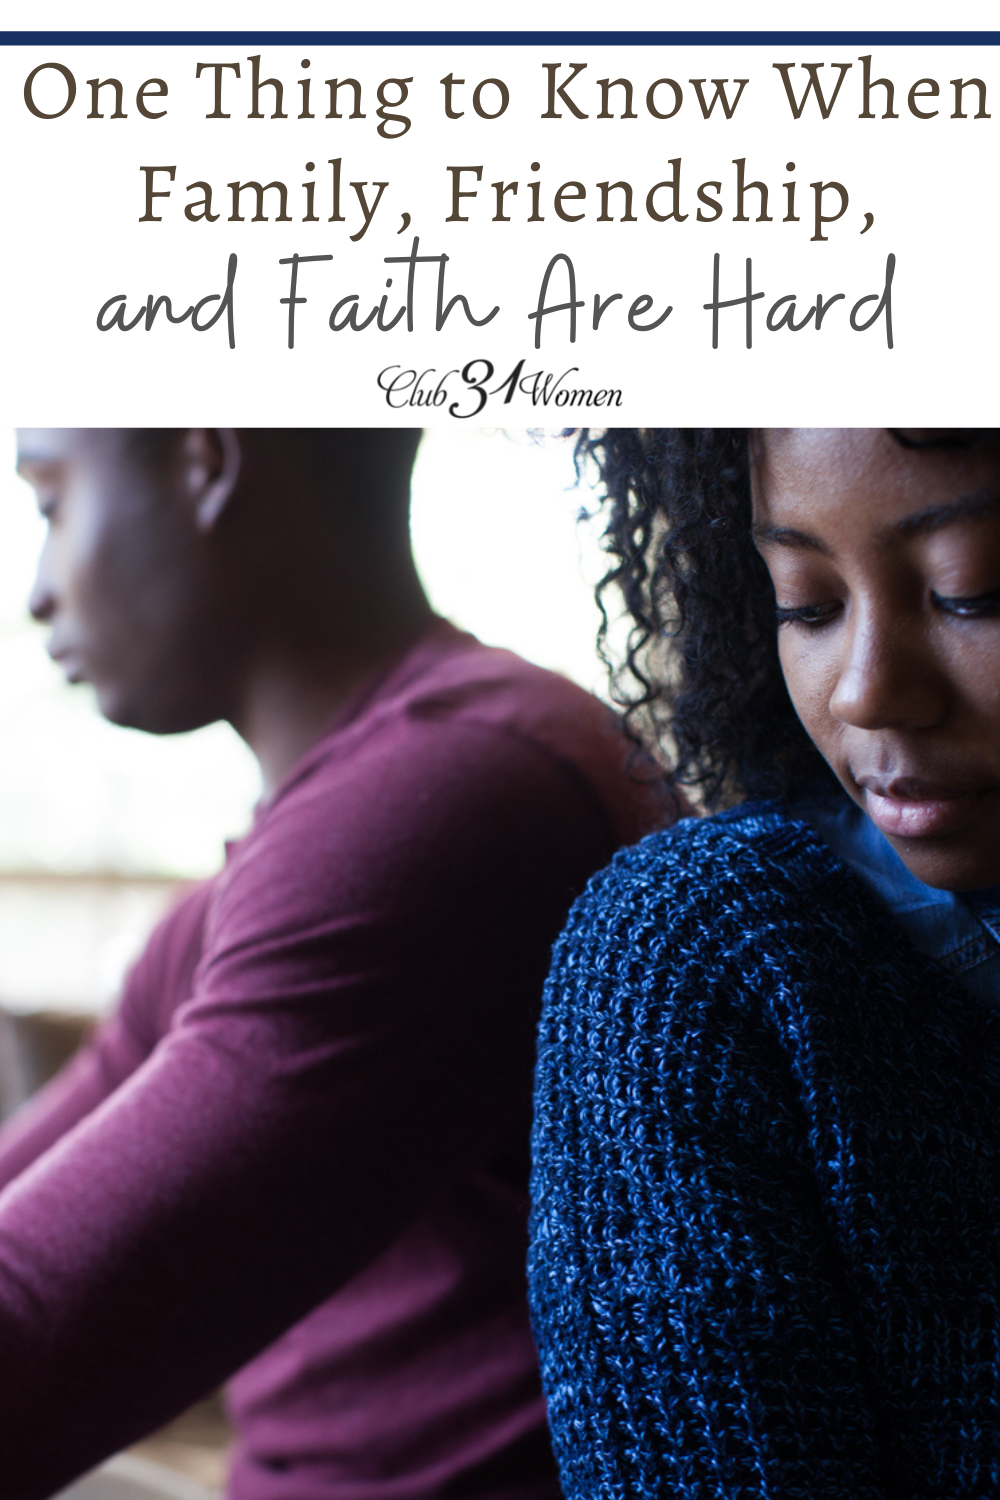 One Thing to Know When Family, Friendship, and Faith Are Hard via @Club31Women